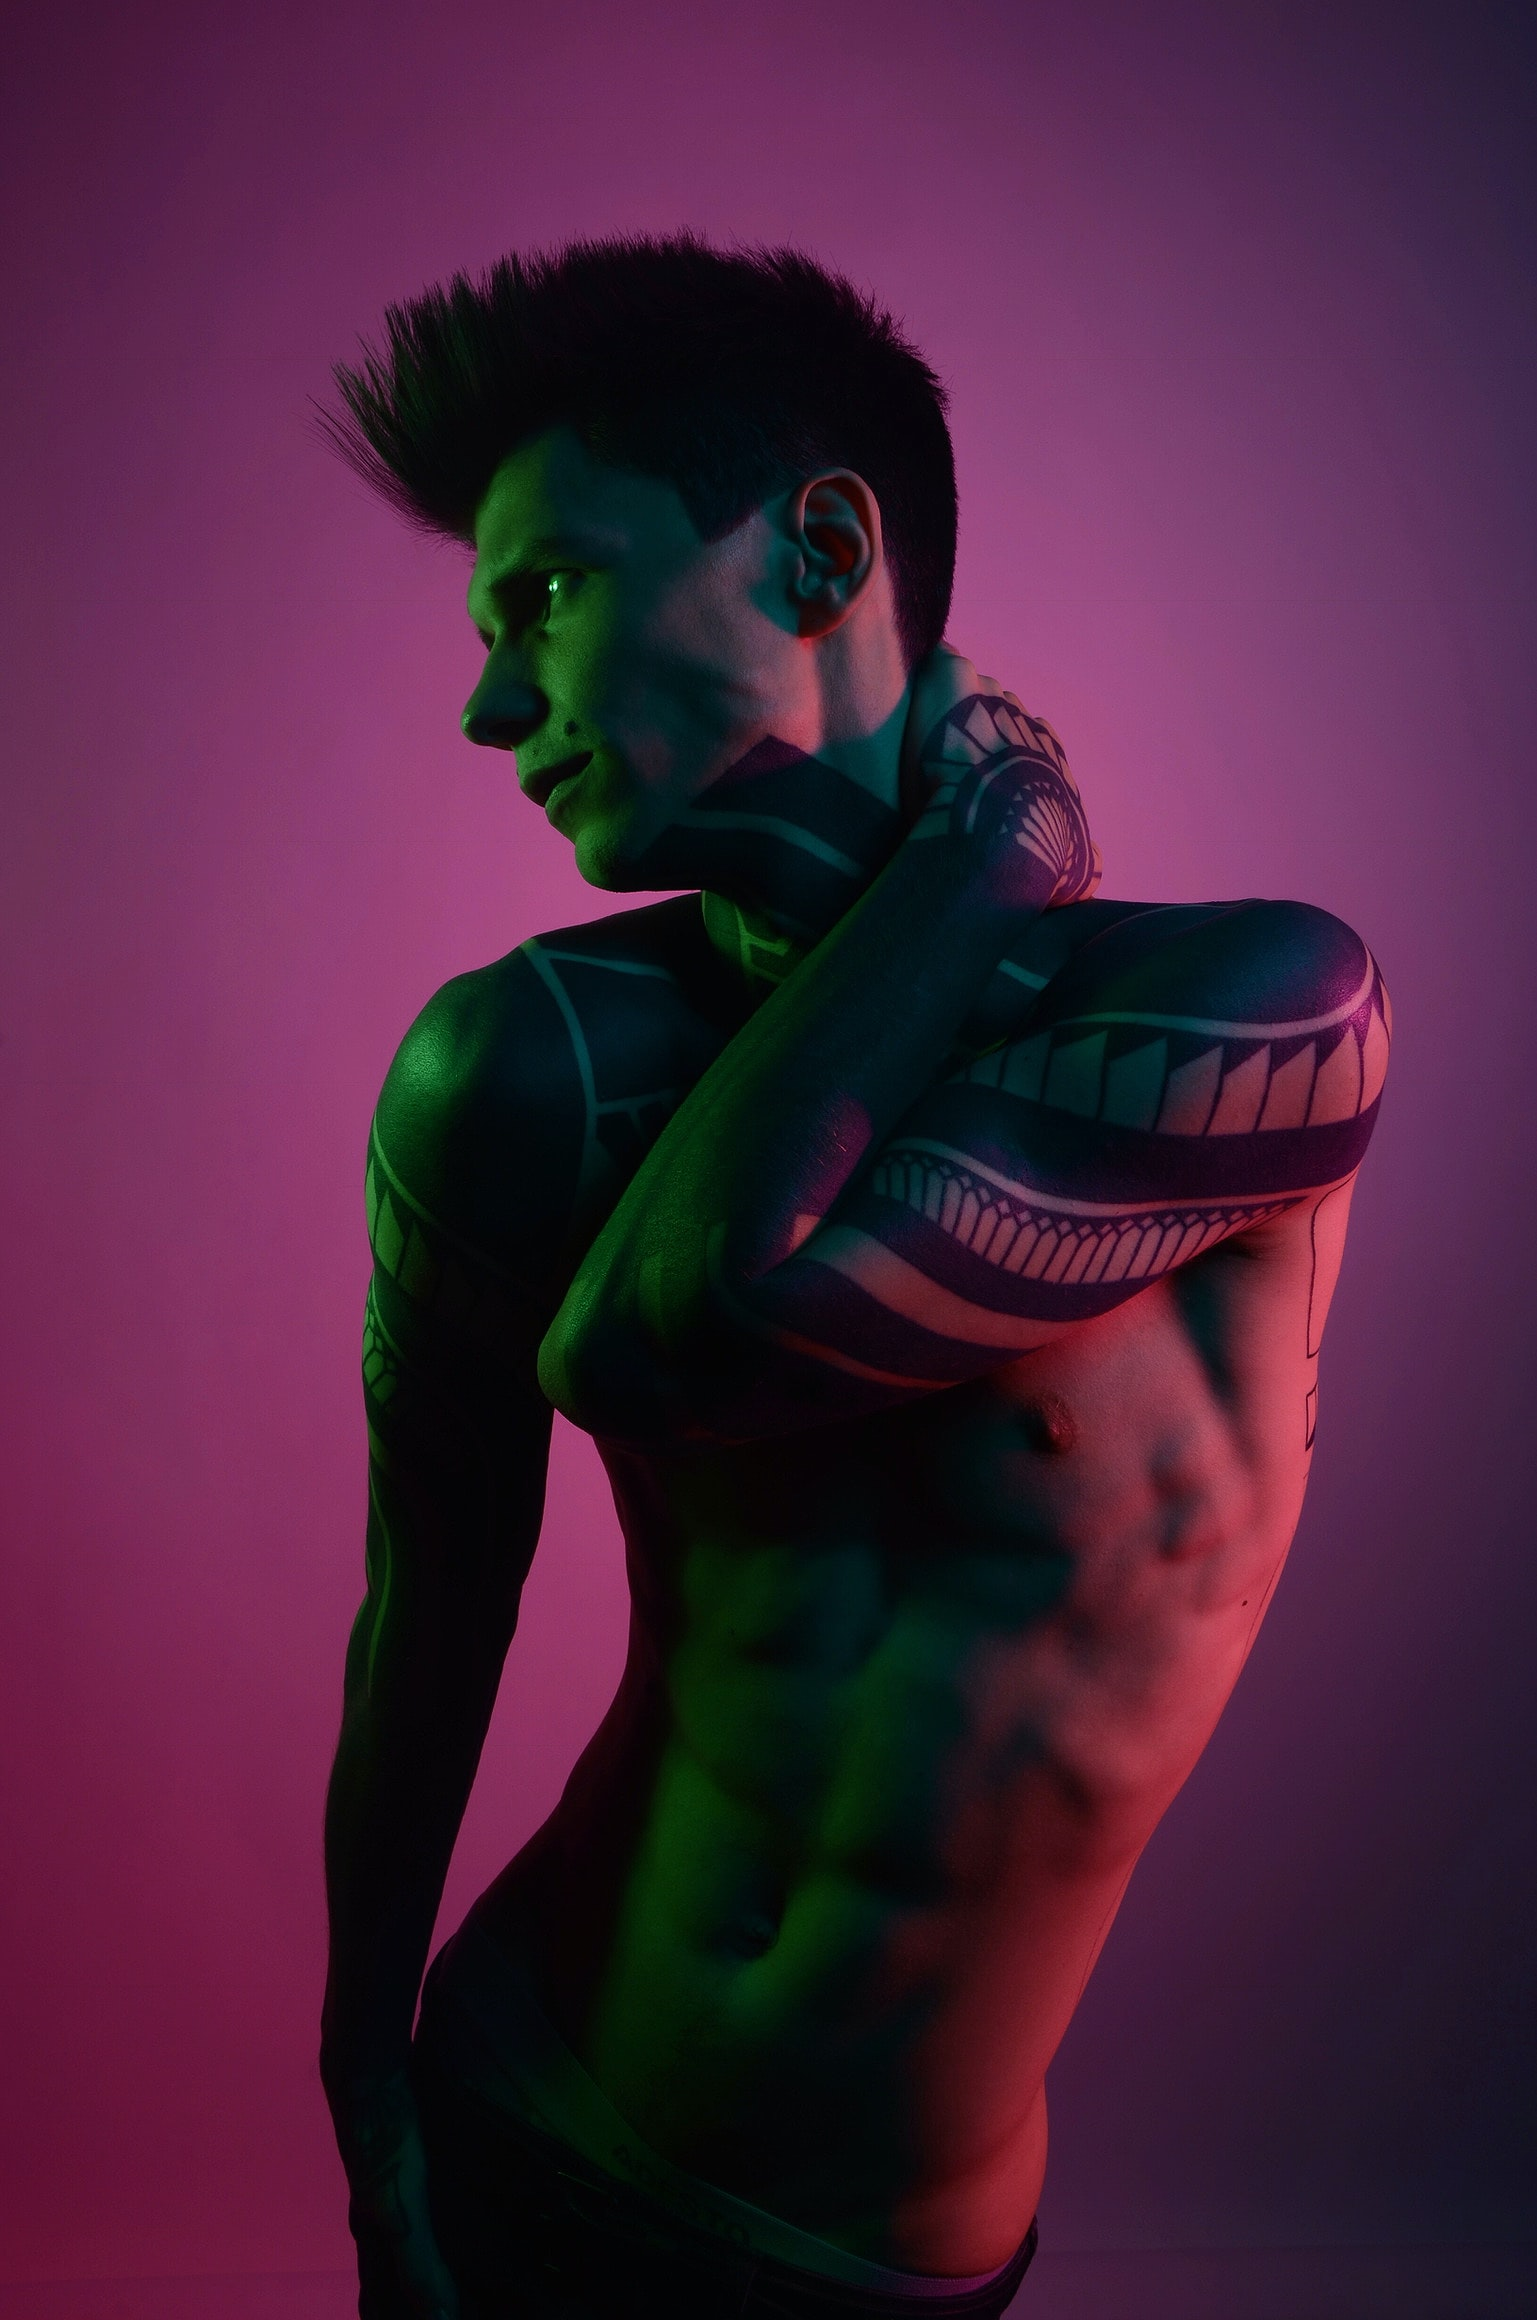 Naked model with tattoo sleeves poses against a pink background